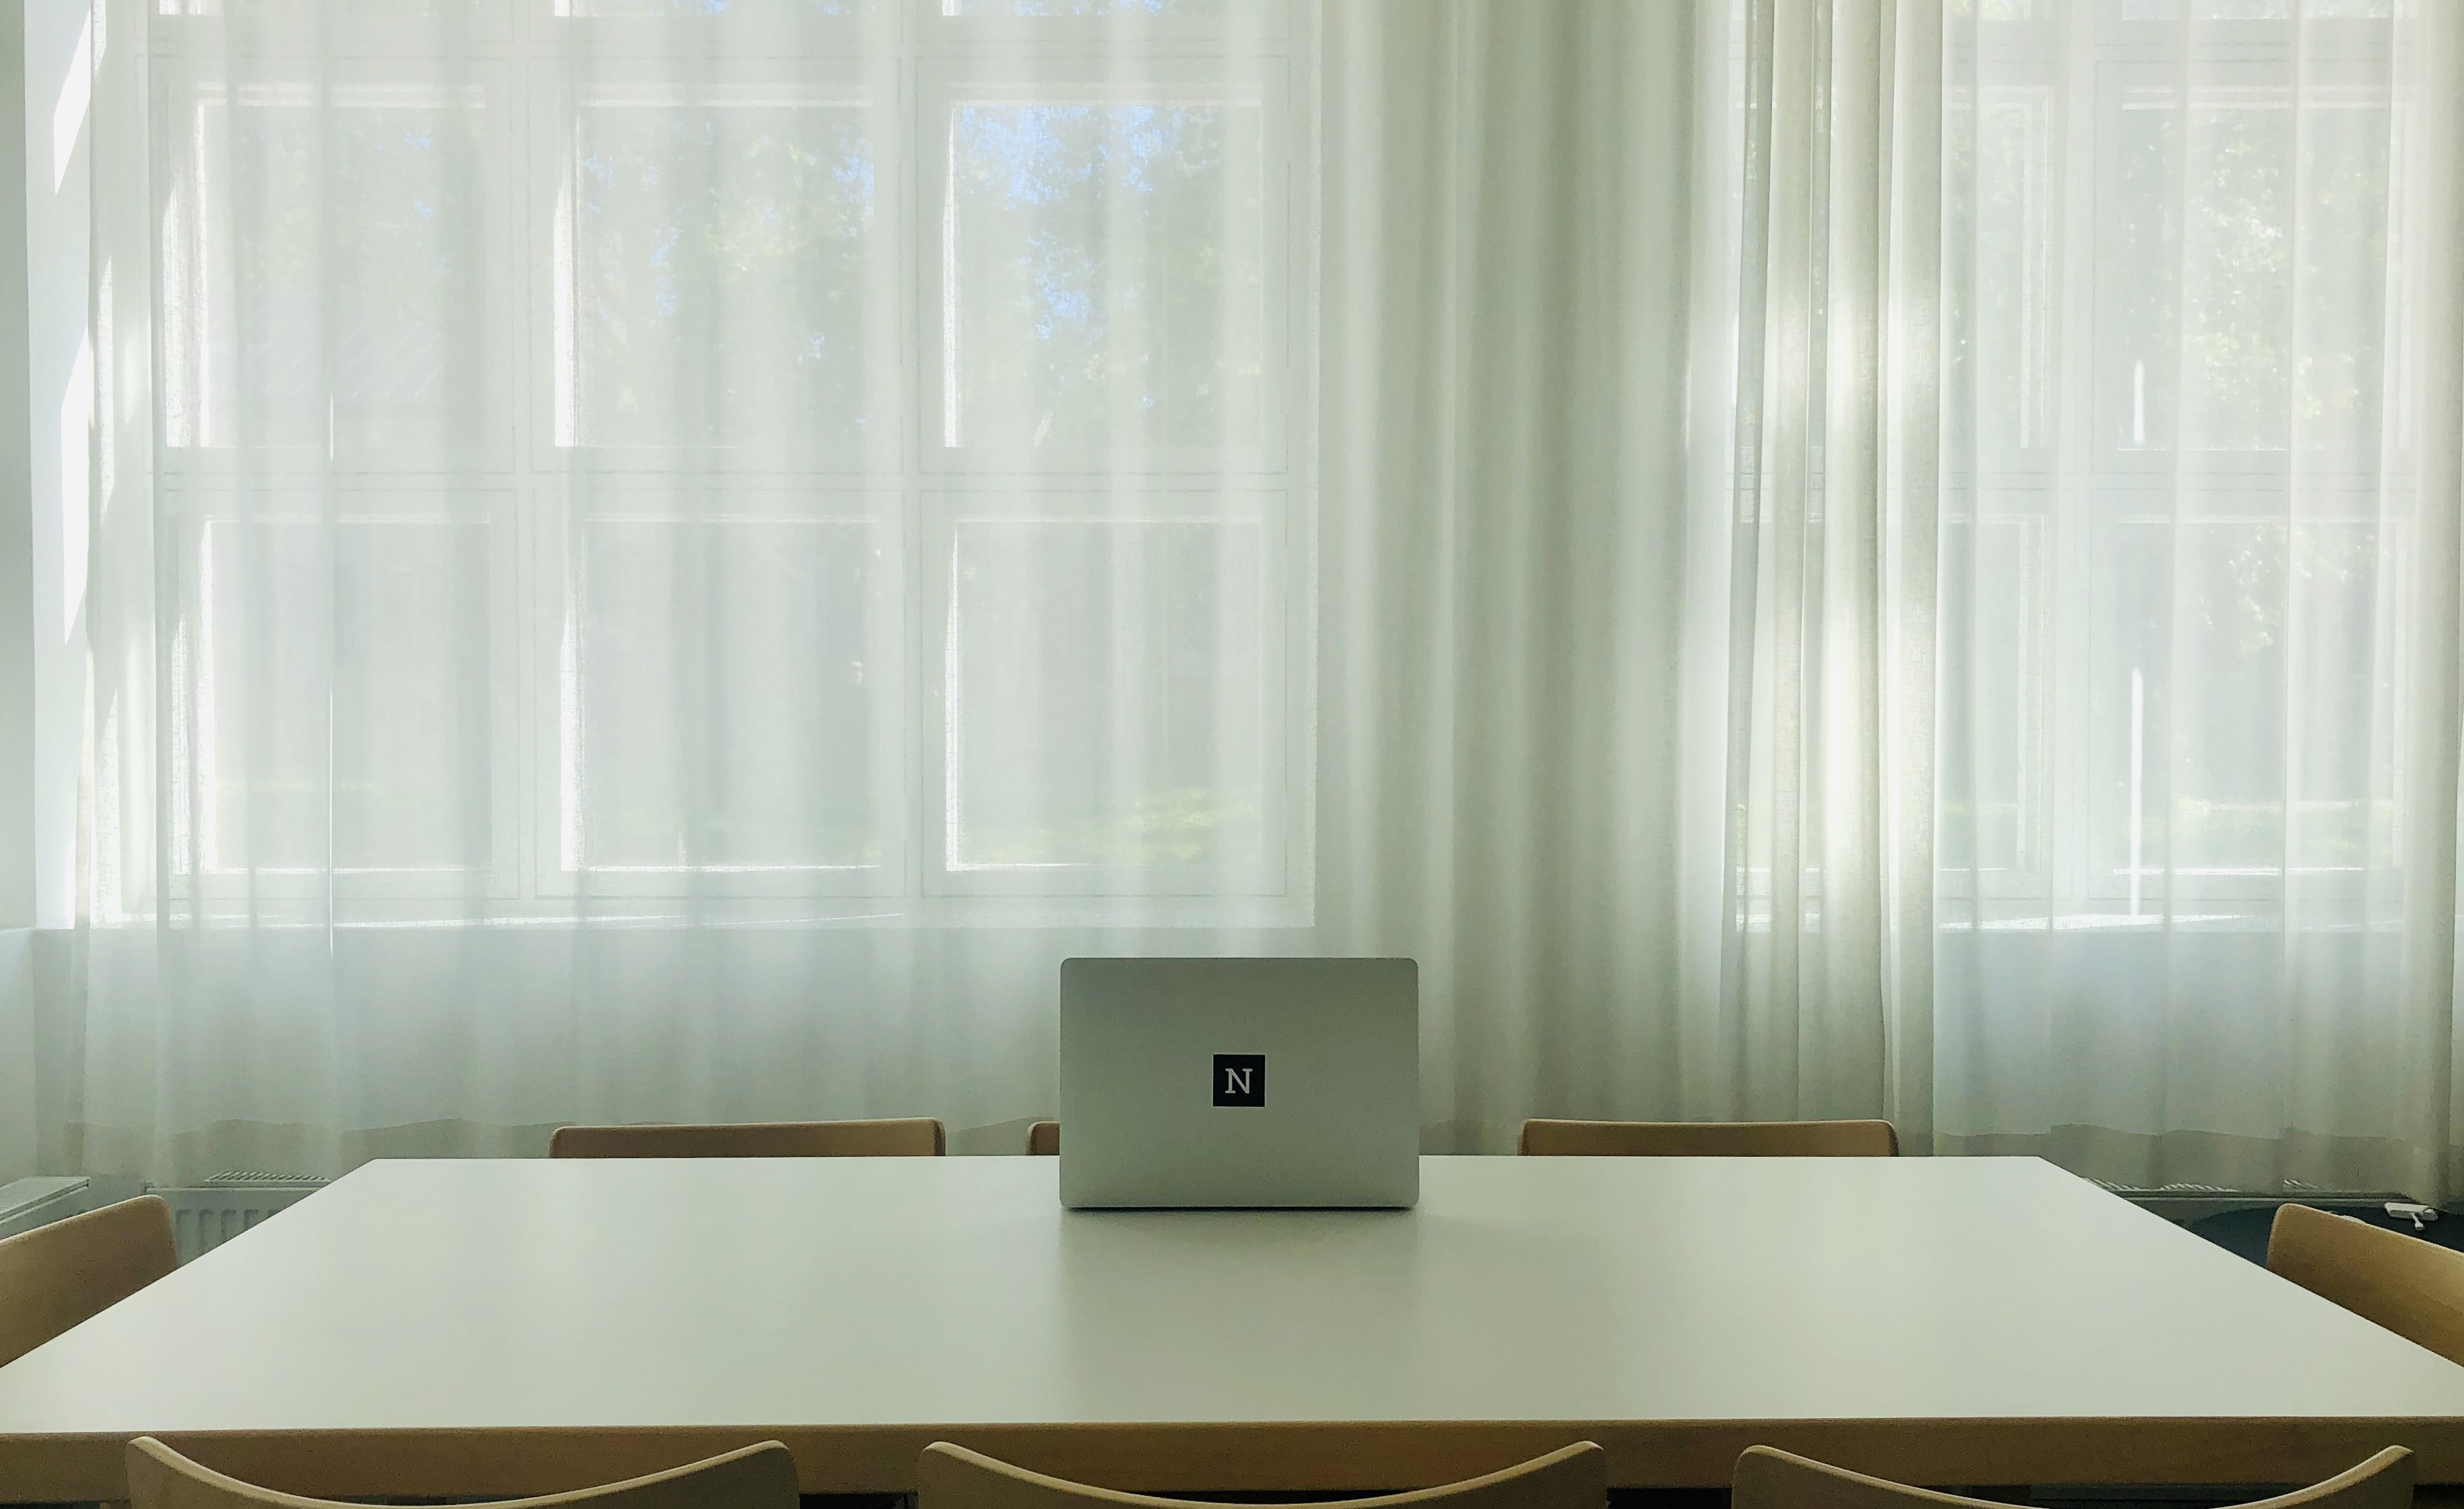 Using your club room as temporary office space at your condominium